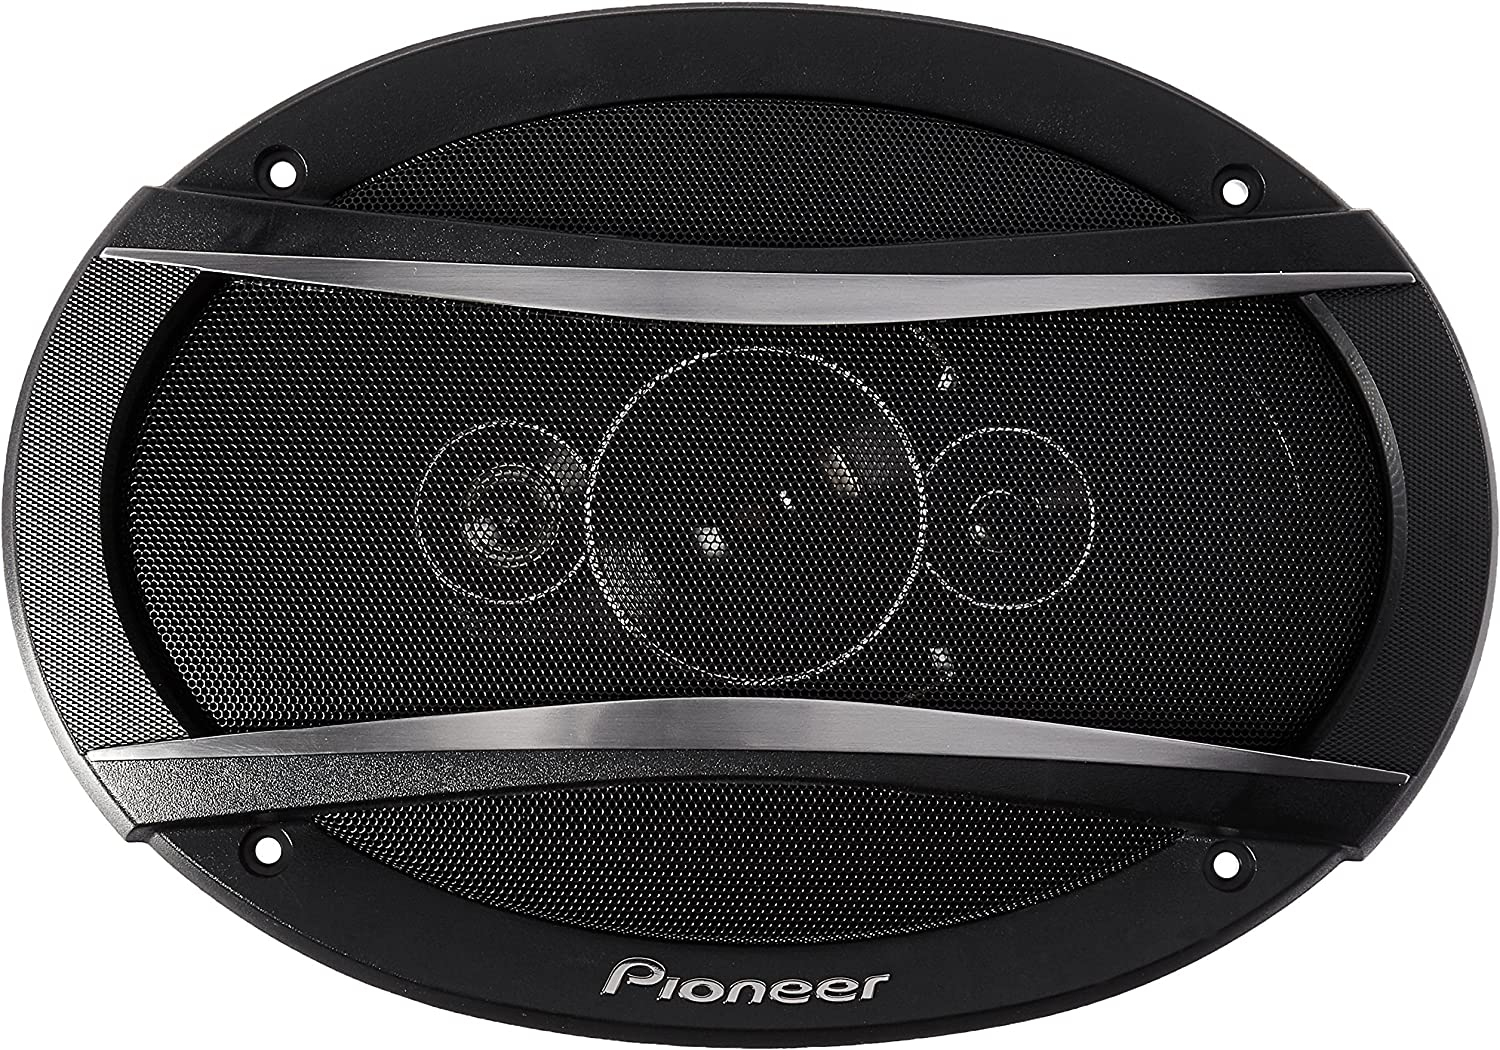 "Pioneer TS-A6986R A-Series 6"" X 9"" 600W 4-Way Speakers"